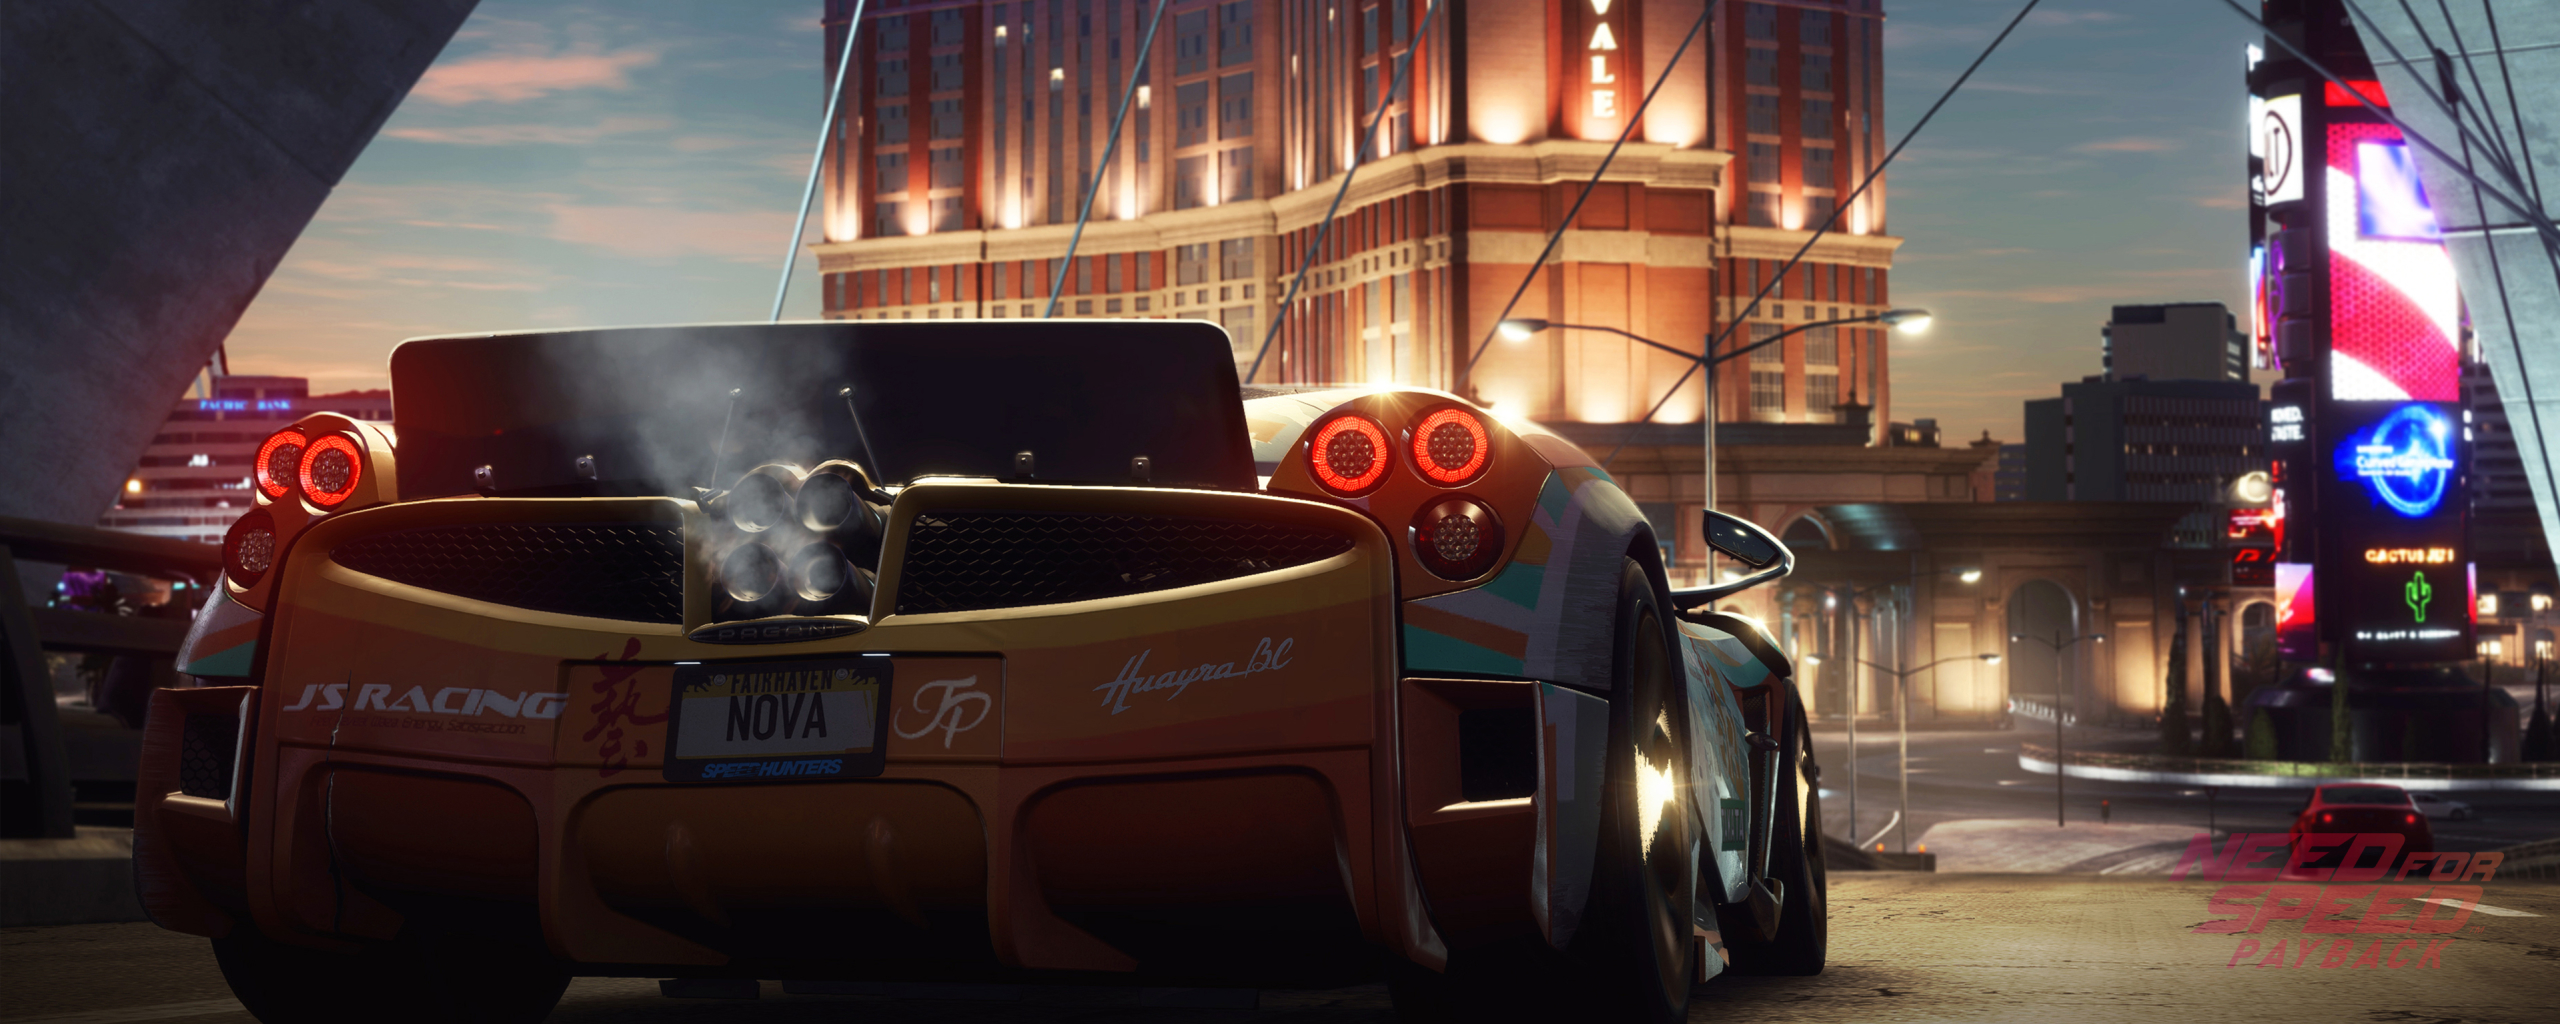 Need For Speed Payback Wallpaper: Download Need For Speed Payback Pc 2017 1280x800